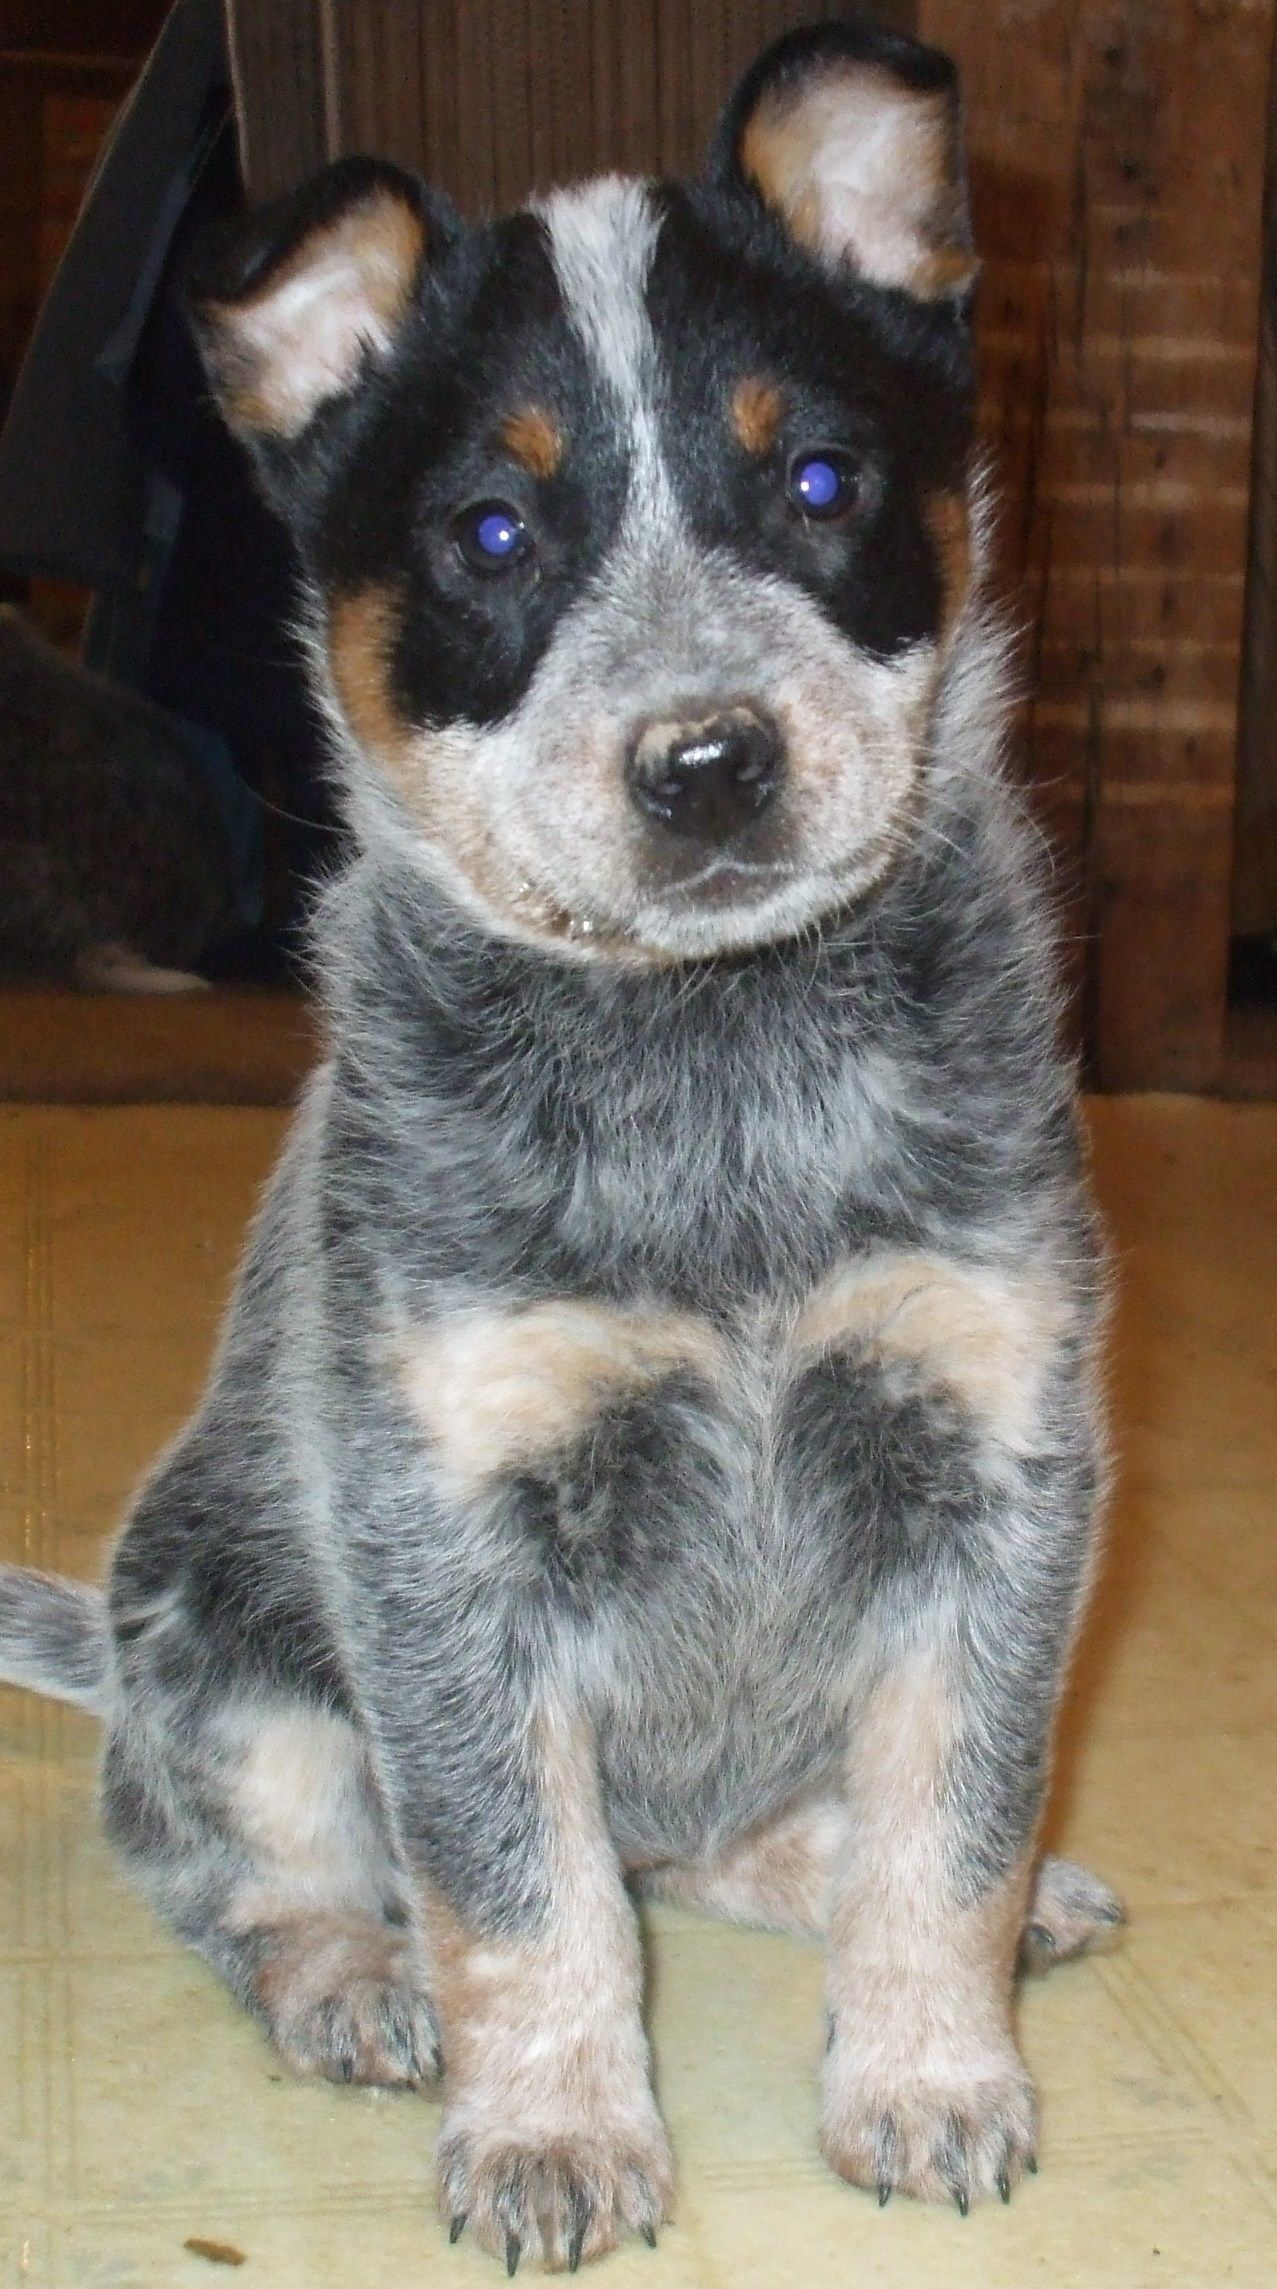 Juliet Blue Heeler Puppy From Cattle Dogs Rule Ready For Her Forever Home Complete With Dirt On Her Blue Heeler Puppies Cattle Dogs Rule Blue Heeler Dogs